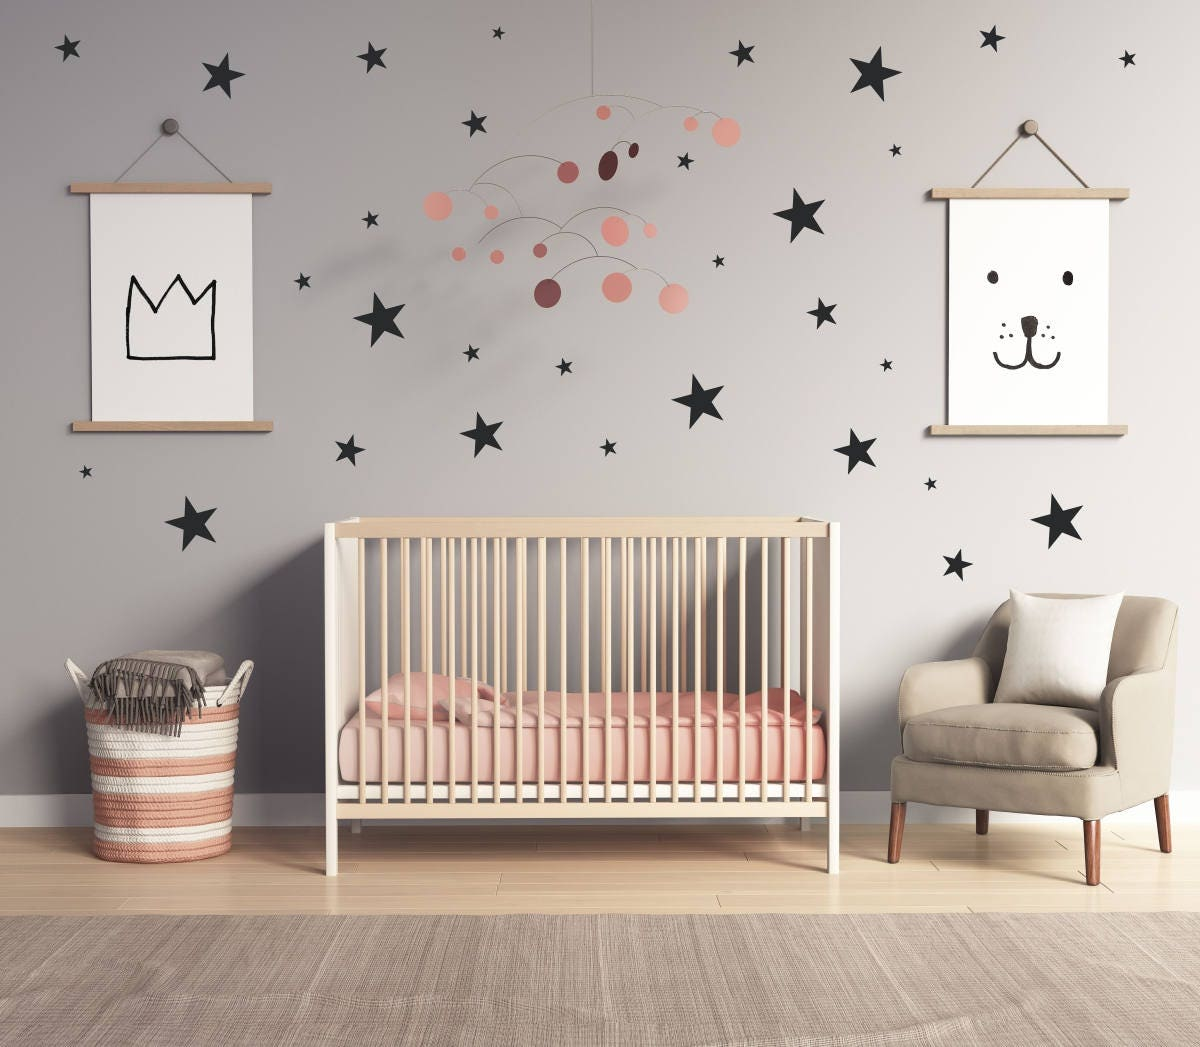 & Star Wall Decals | Nursery Wall Decal | Boys Room Decor